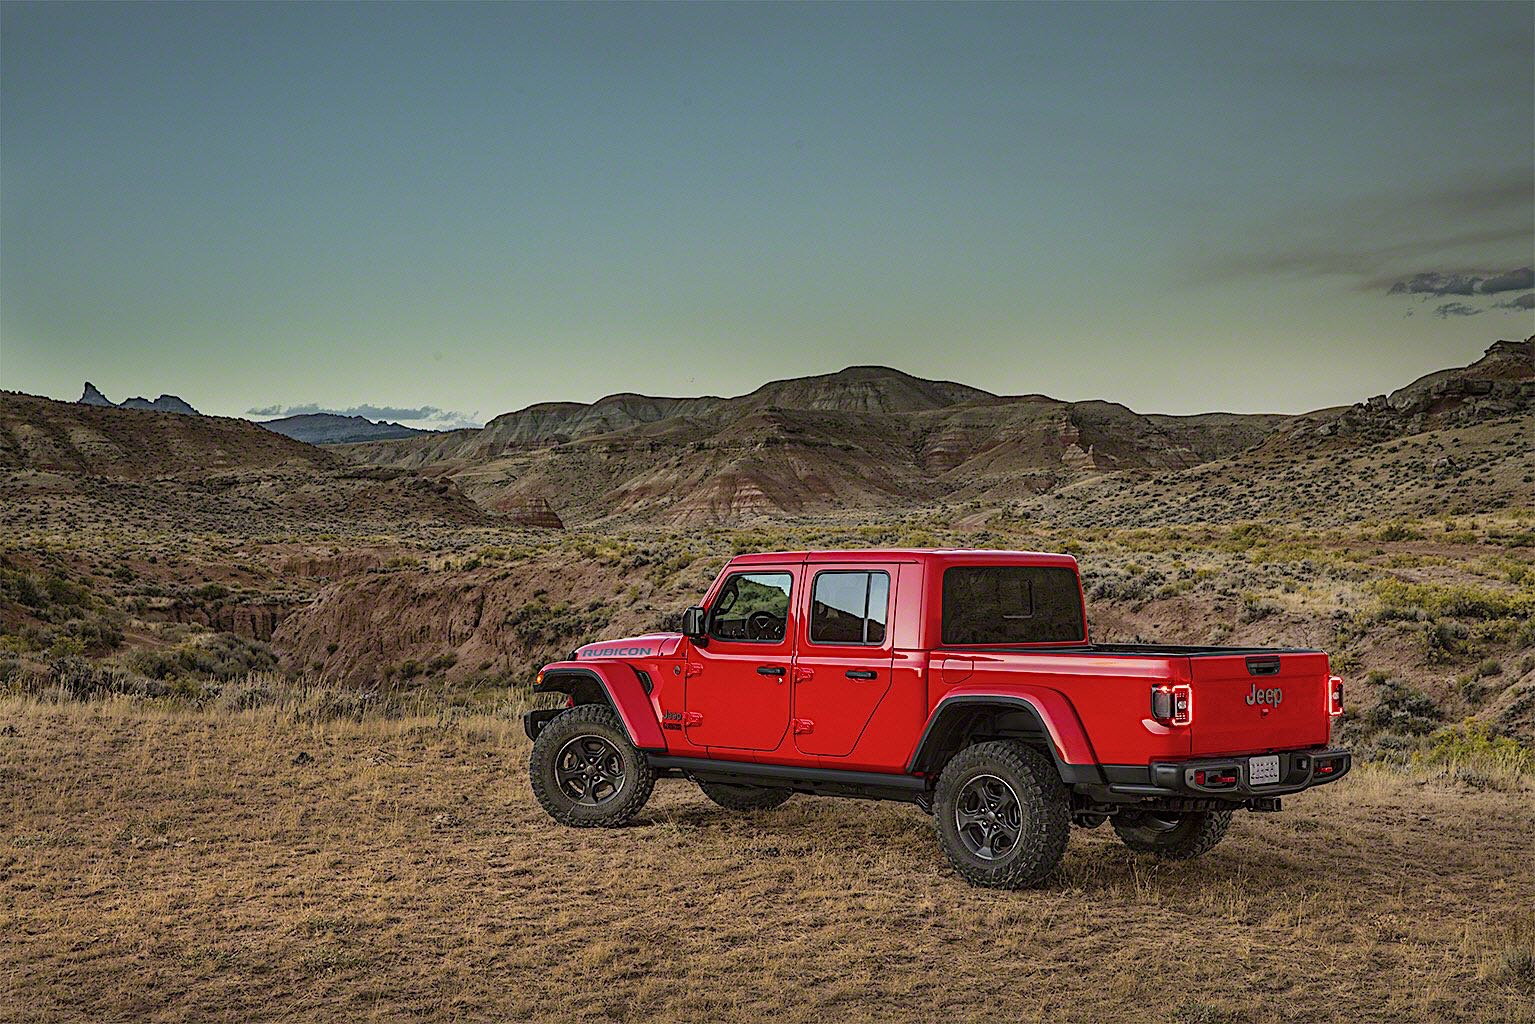 2020 Jeep Gladiator Pickup Truck: Everything You Need to Know, and